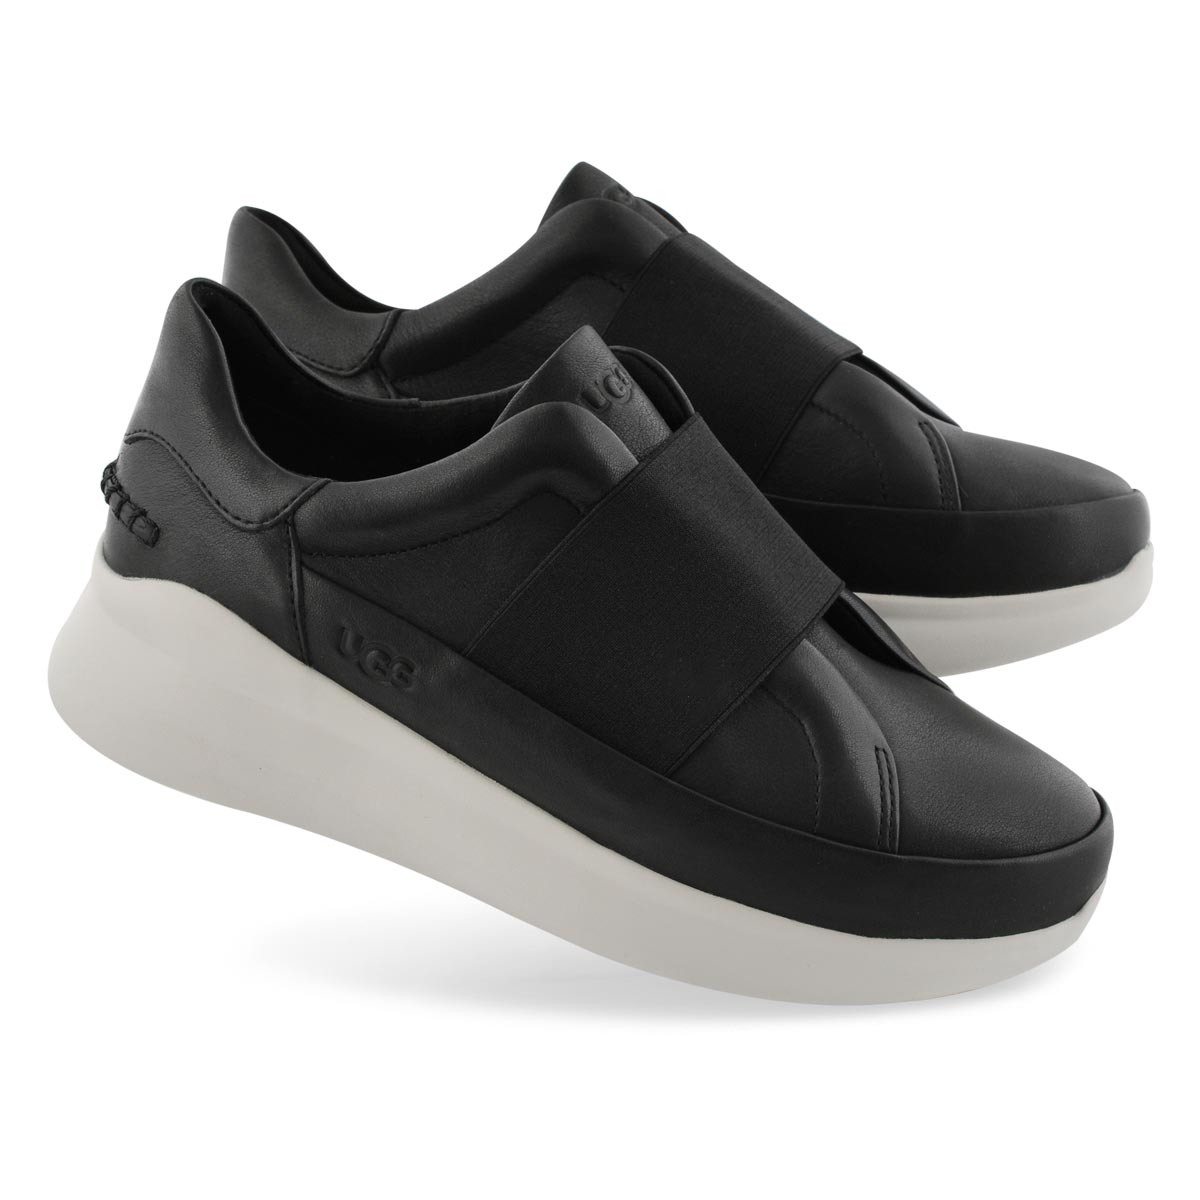 Lds Libu black slip on sneaker